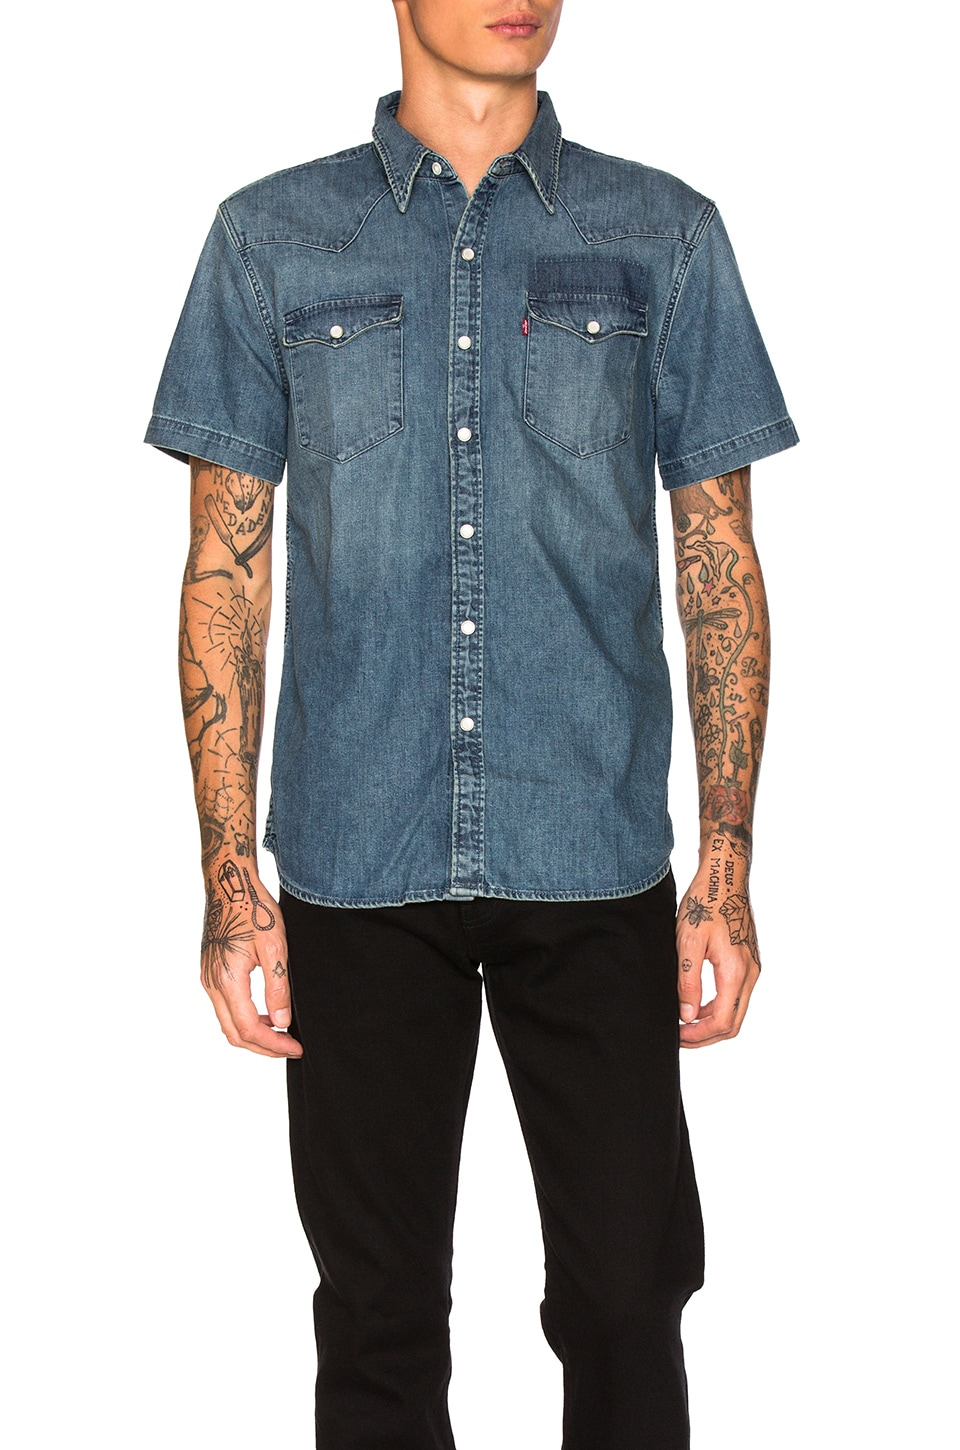 Barstow Western Shirt by LEVI'S Premium